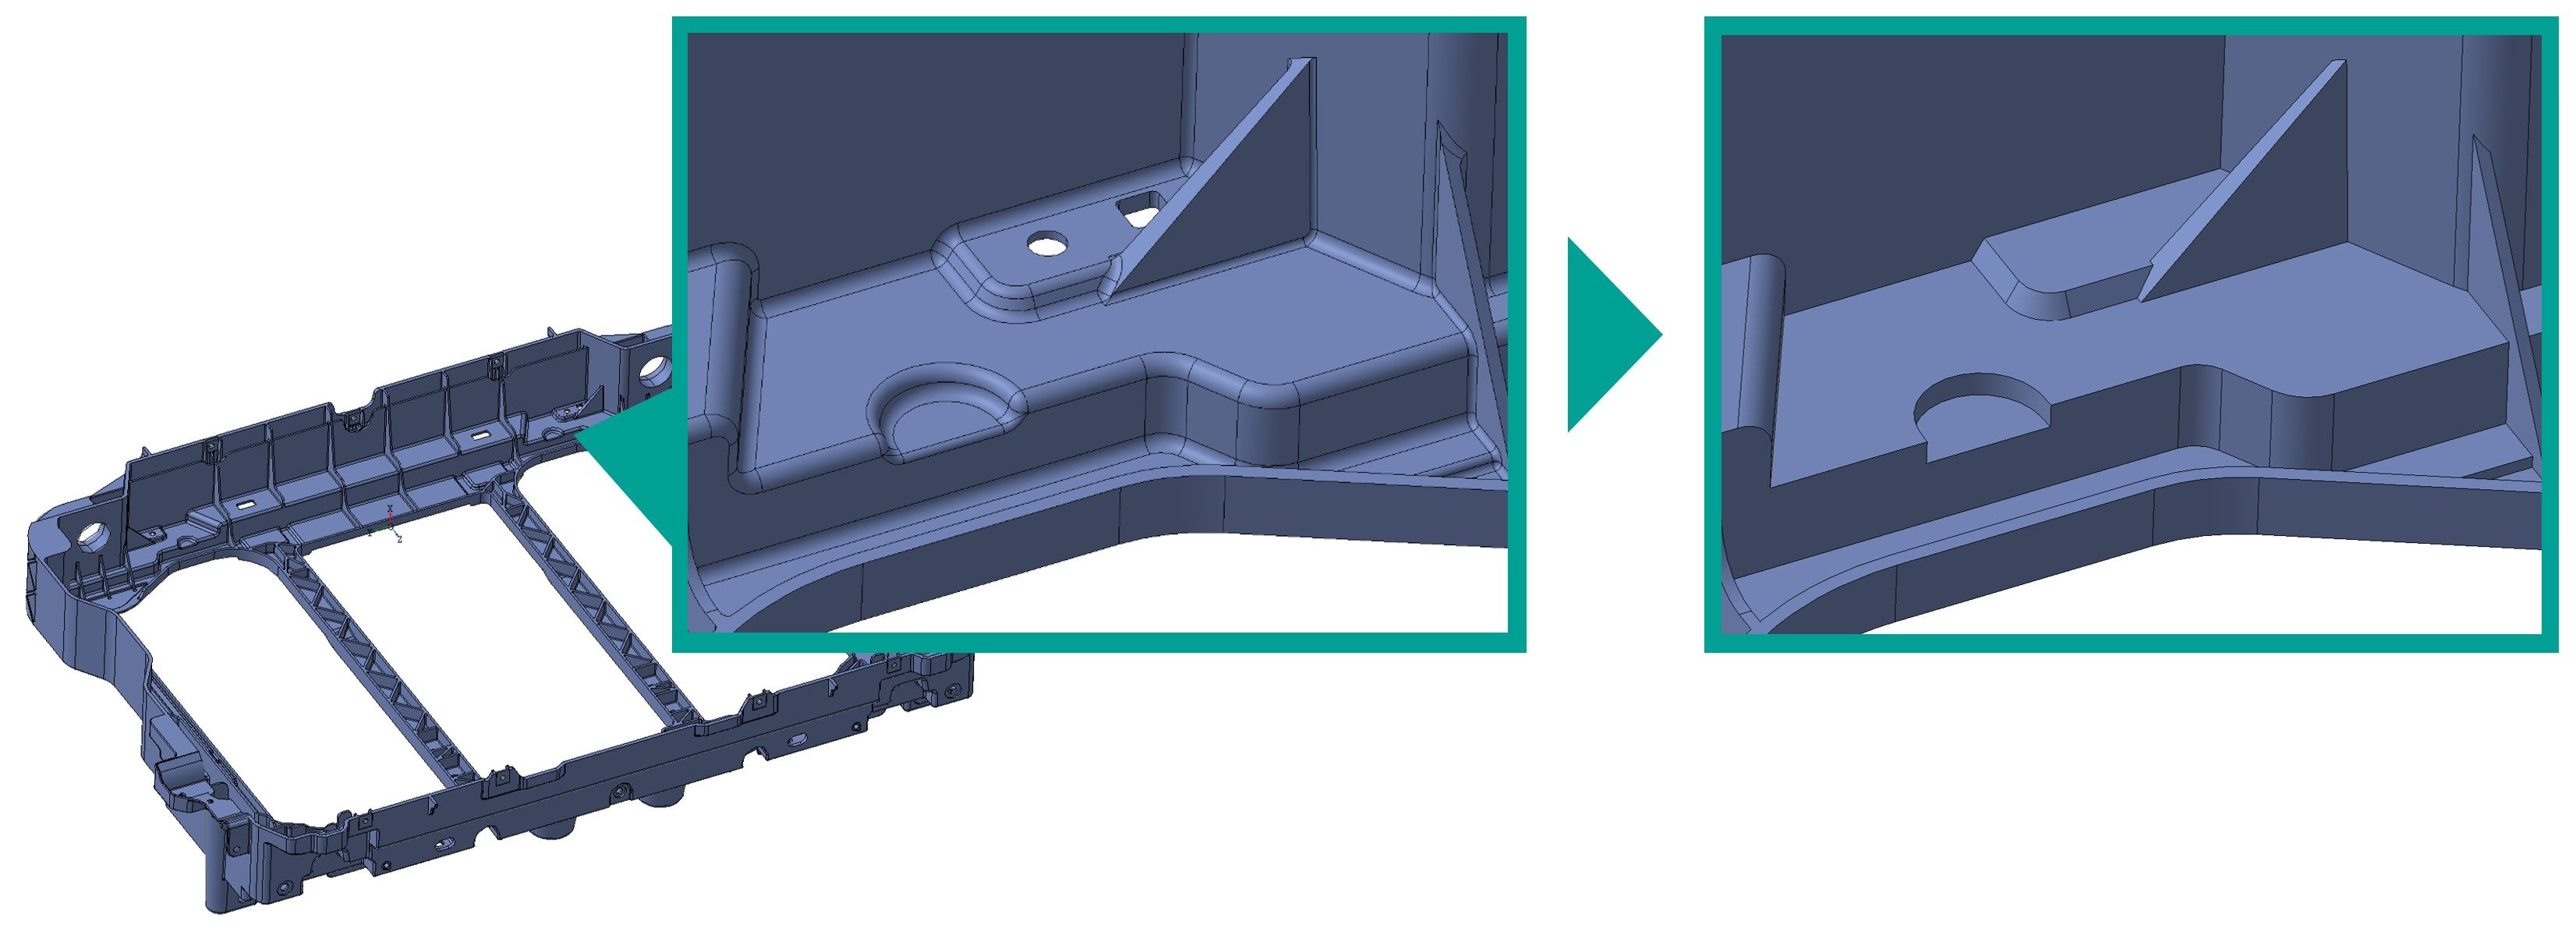 Simplify Your 3D Models – Collaborative Engineering Based on